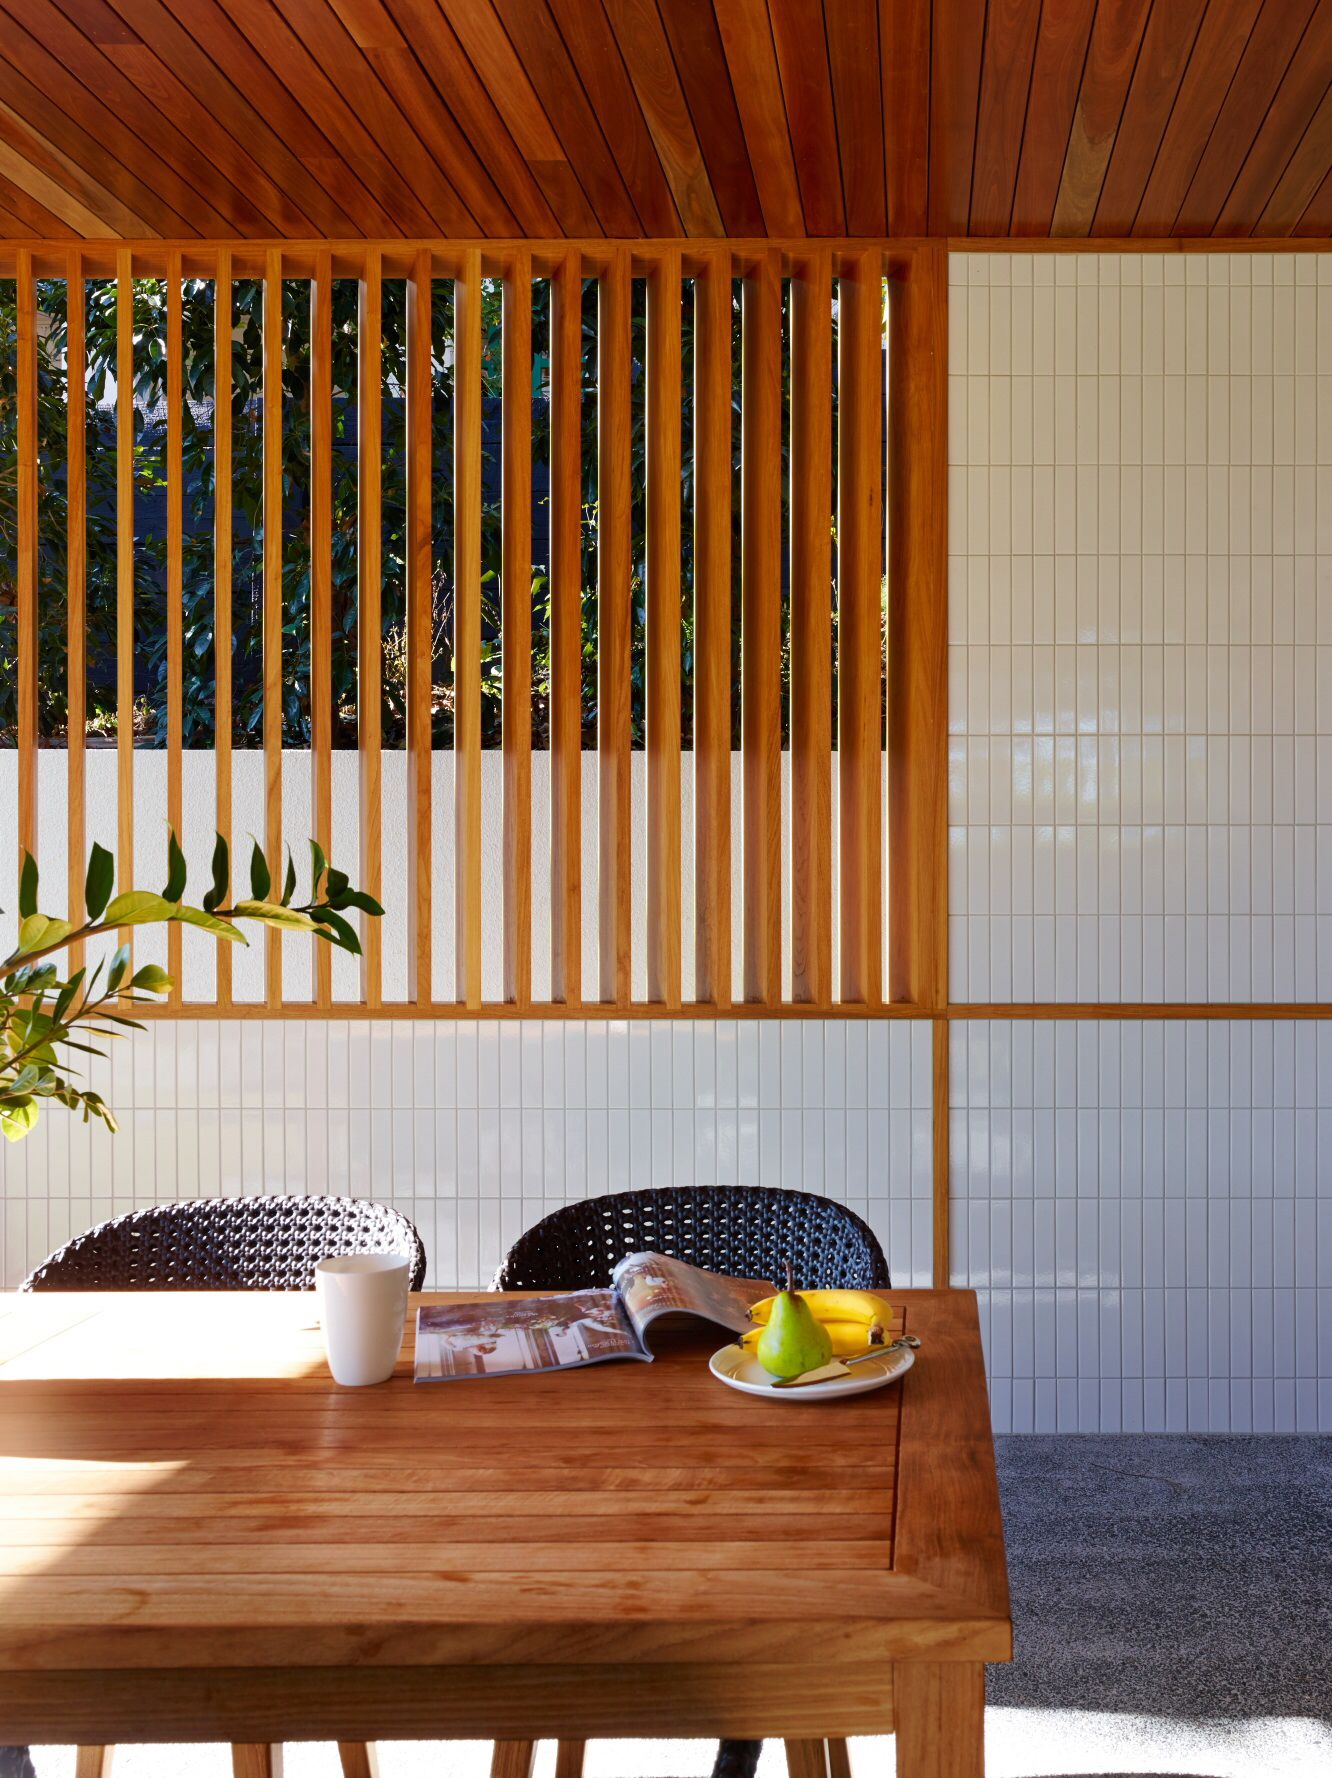 Post PostWar House by Shaun Lockyer Architects Brisbane